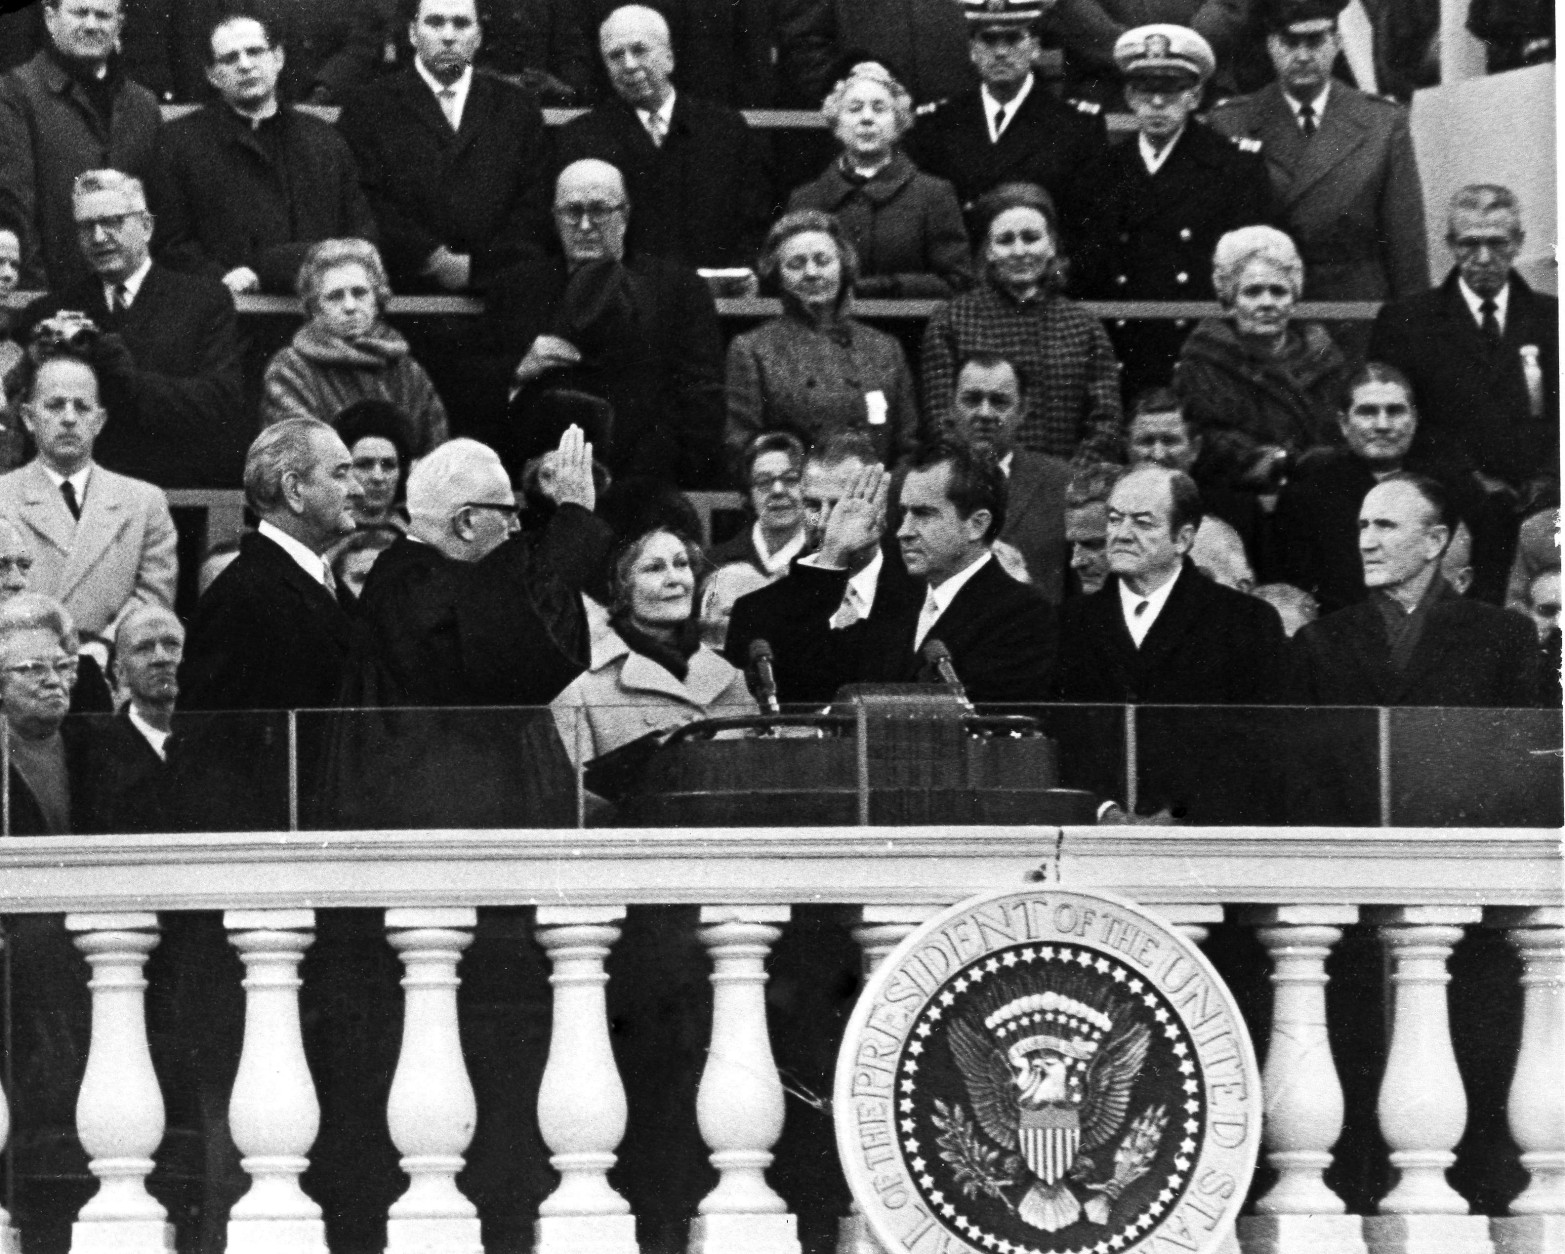 President Richard M. Nixon takes the oath of office from Chief Justice Earl Warren as his wife, Pat Nixon, holds two family bibles on the steps of the U.S. Capitol in Washington, Jan. 20, 1969. Former President Lyndon Johnson is beside Warren while Nixon is flanked by Vice President Spiro Agnew and former Vice President Hubert Humphrey, right. Lady Bird Johnson, the former president's wife is at extreme left, and Agnew's wife Judy is beside her. Sen. Mike Mansfield is at right. (AP Photo)